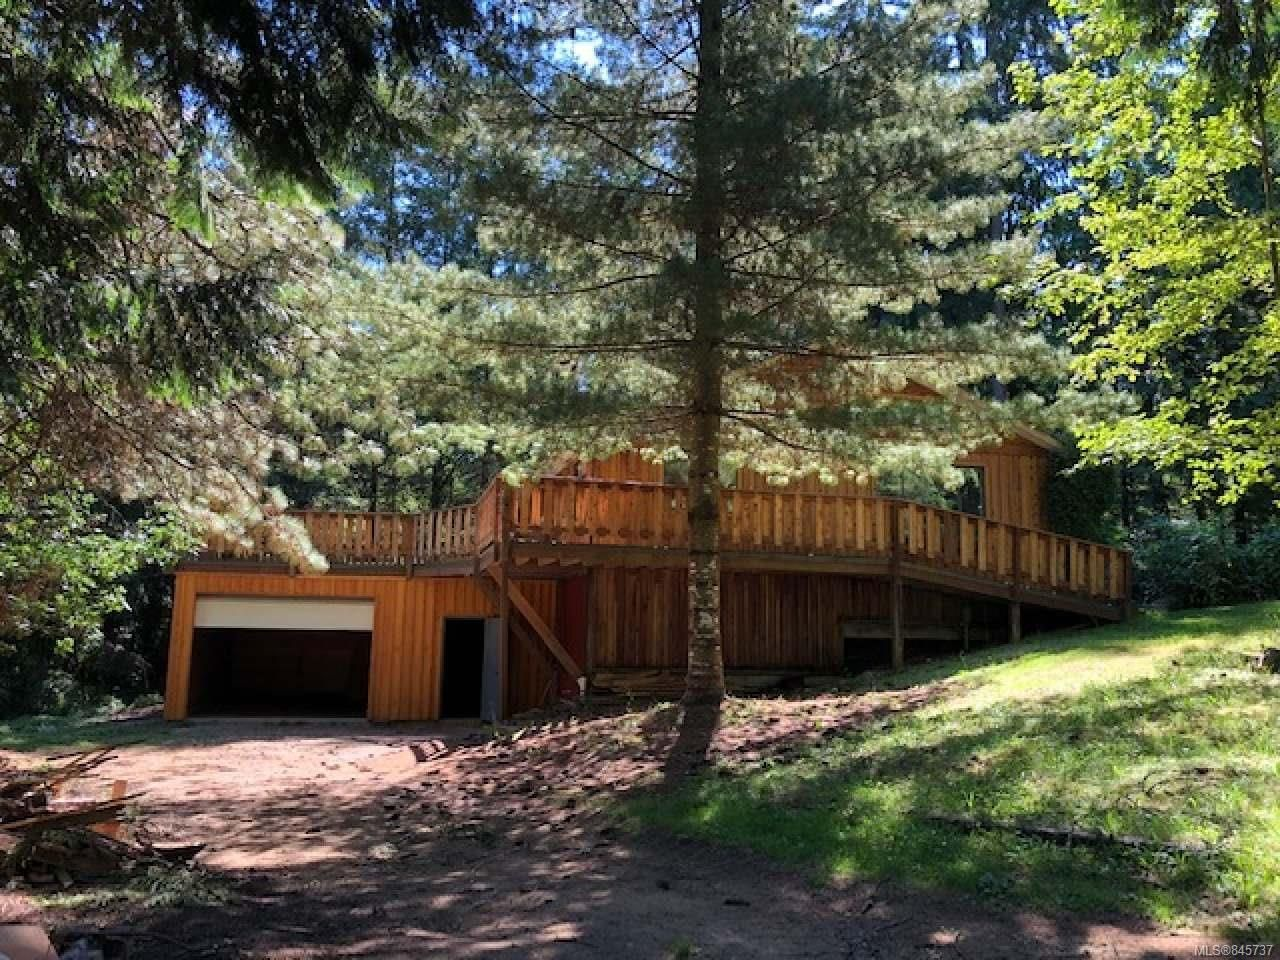 Photo 21: Photos: 3125 Rinvold Rd in QUALICUM BEACH: PQ Errington/Coombs/Hilliers House for sale (Parksville/Qualicum)  : MLS®# 845737